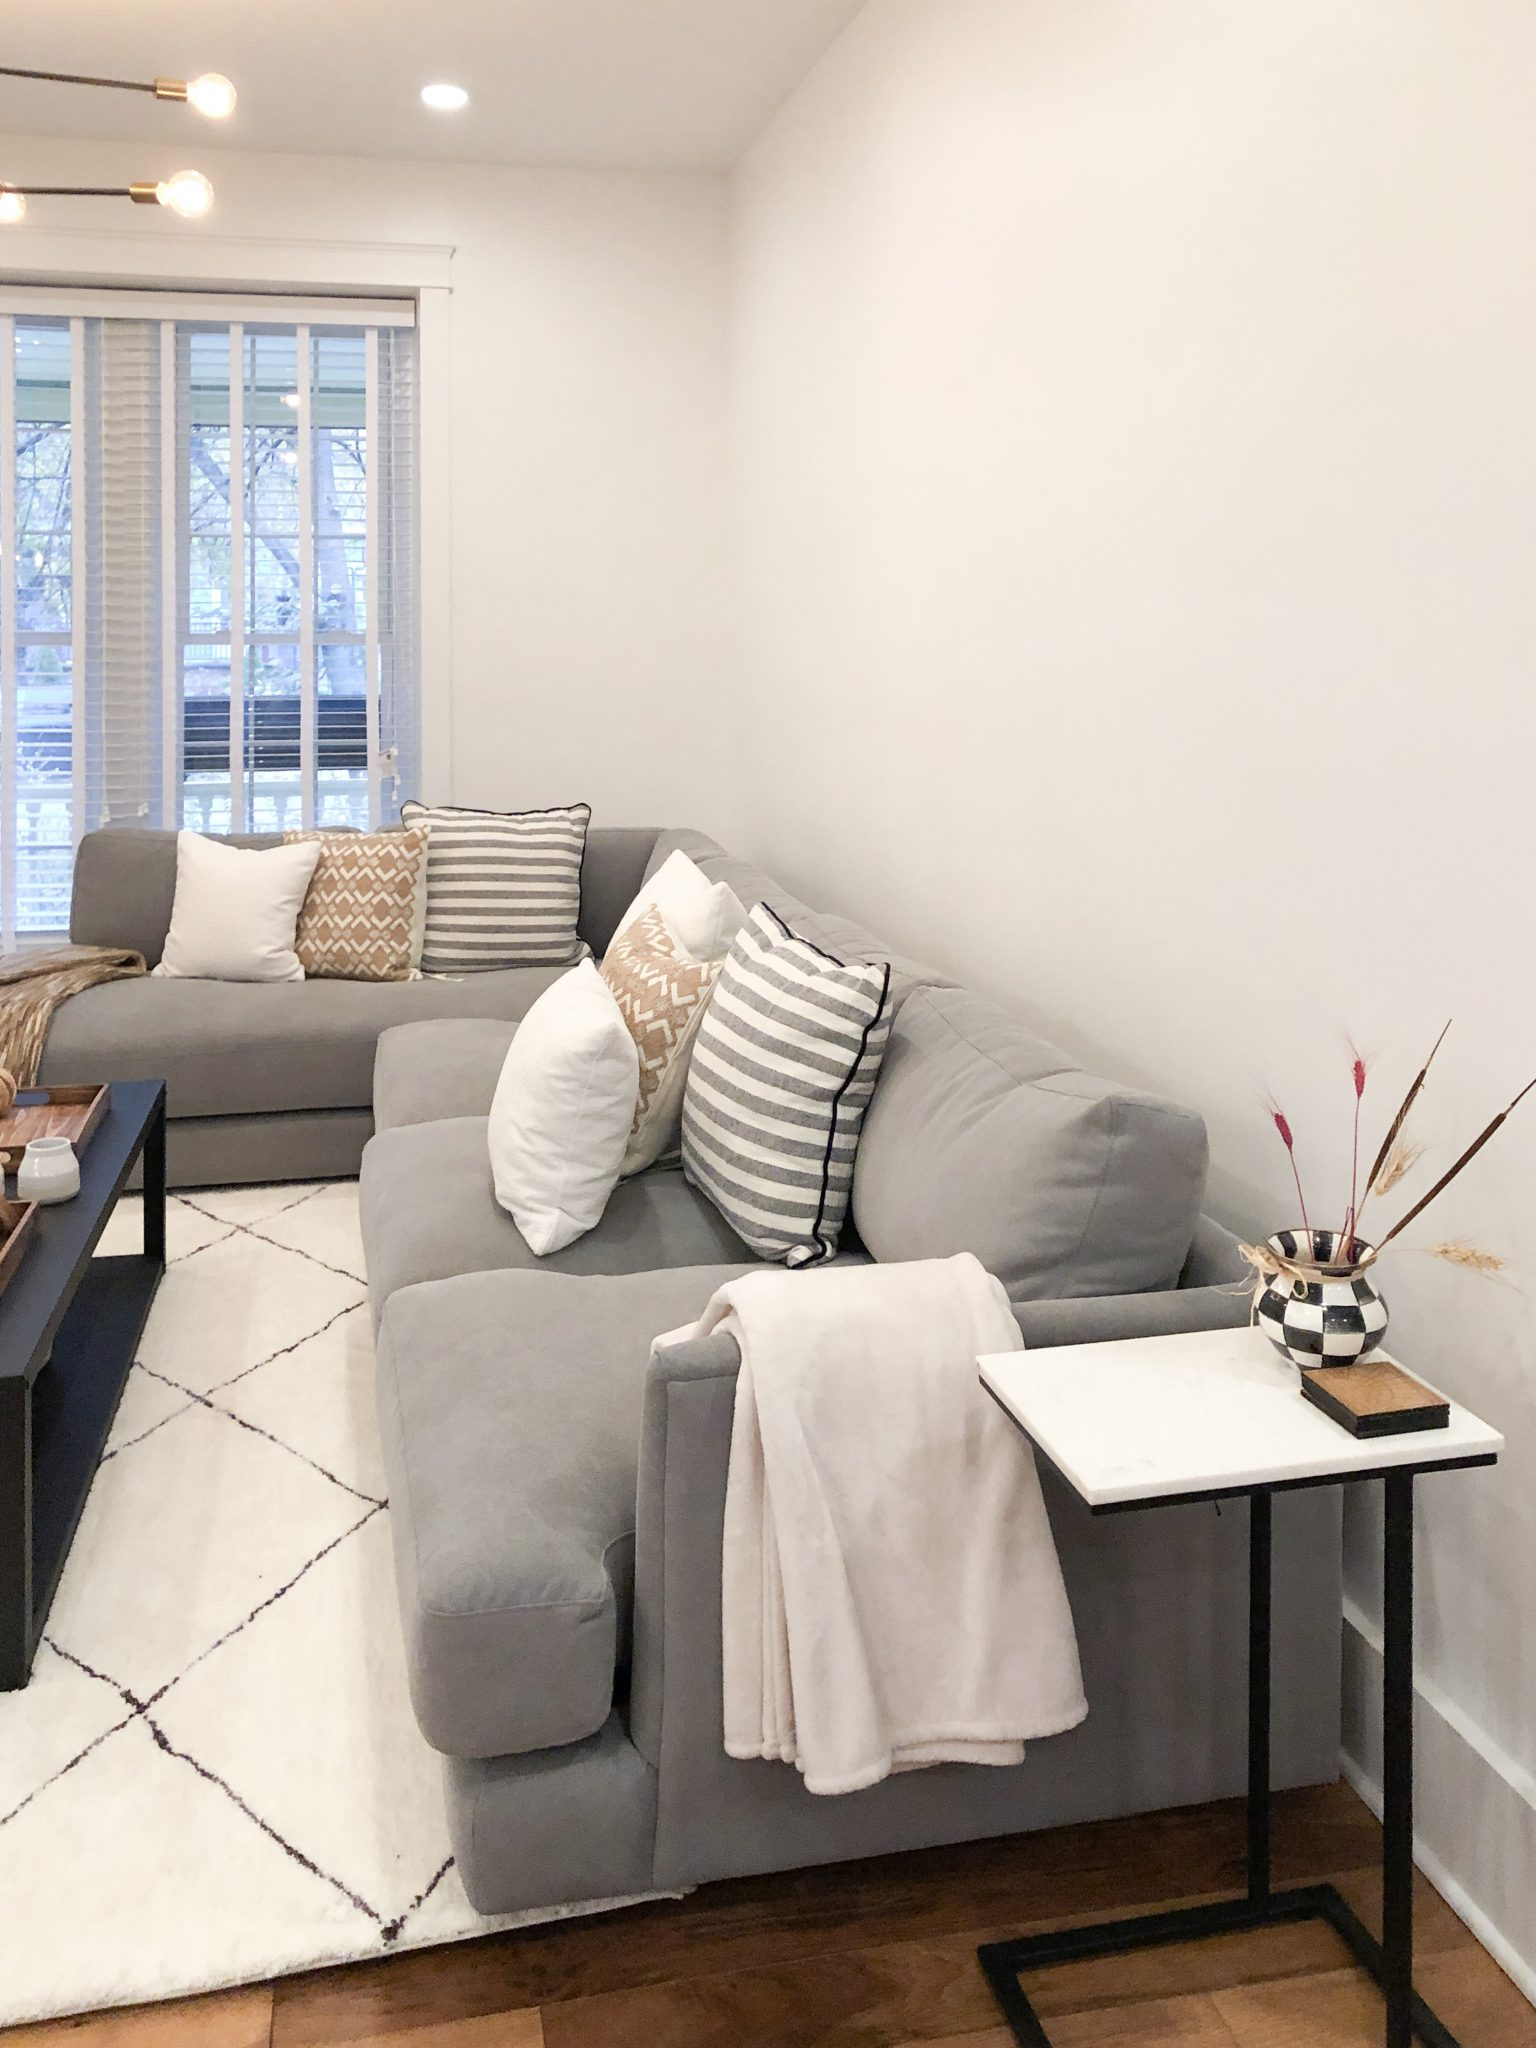 fabulous outcomes of our renovation